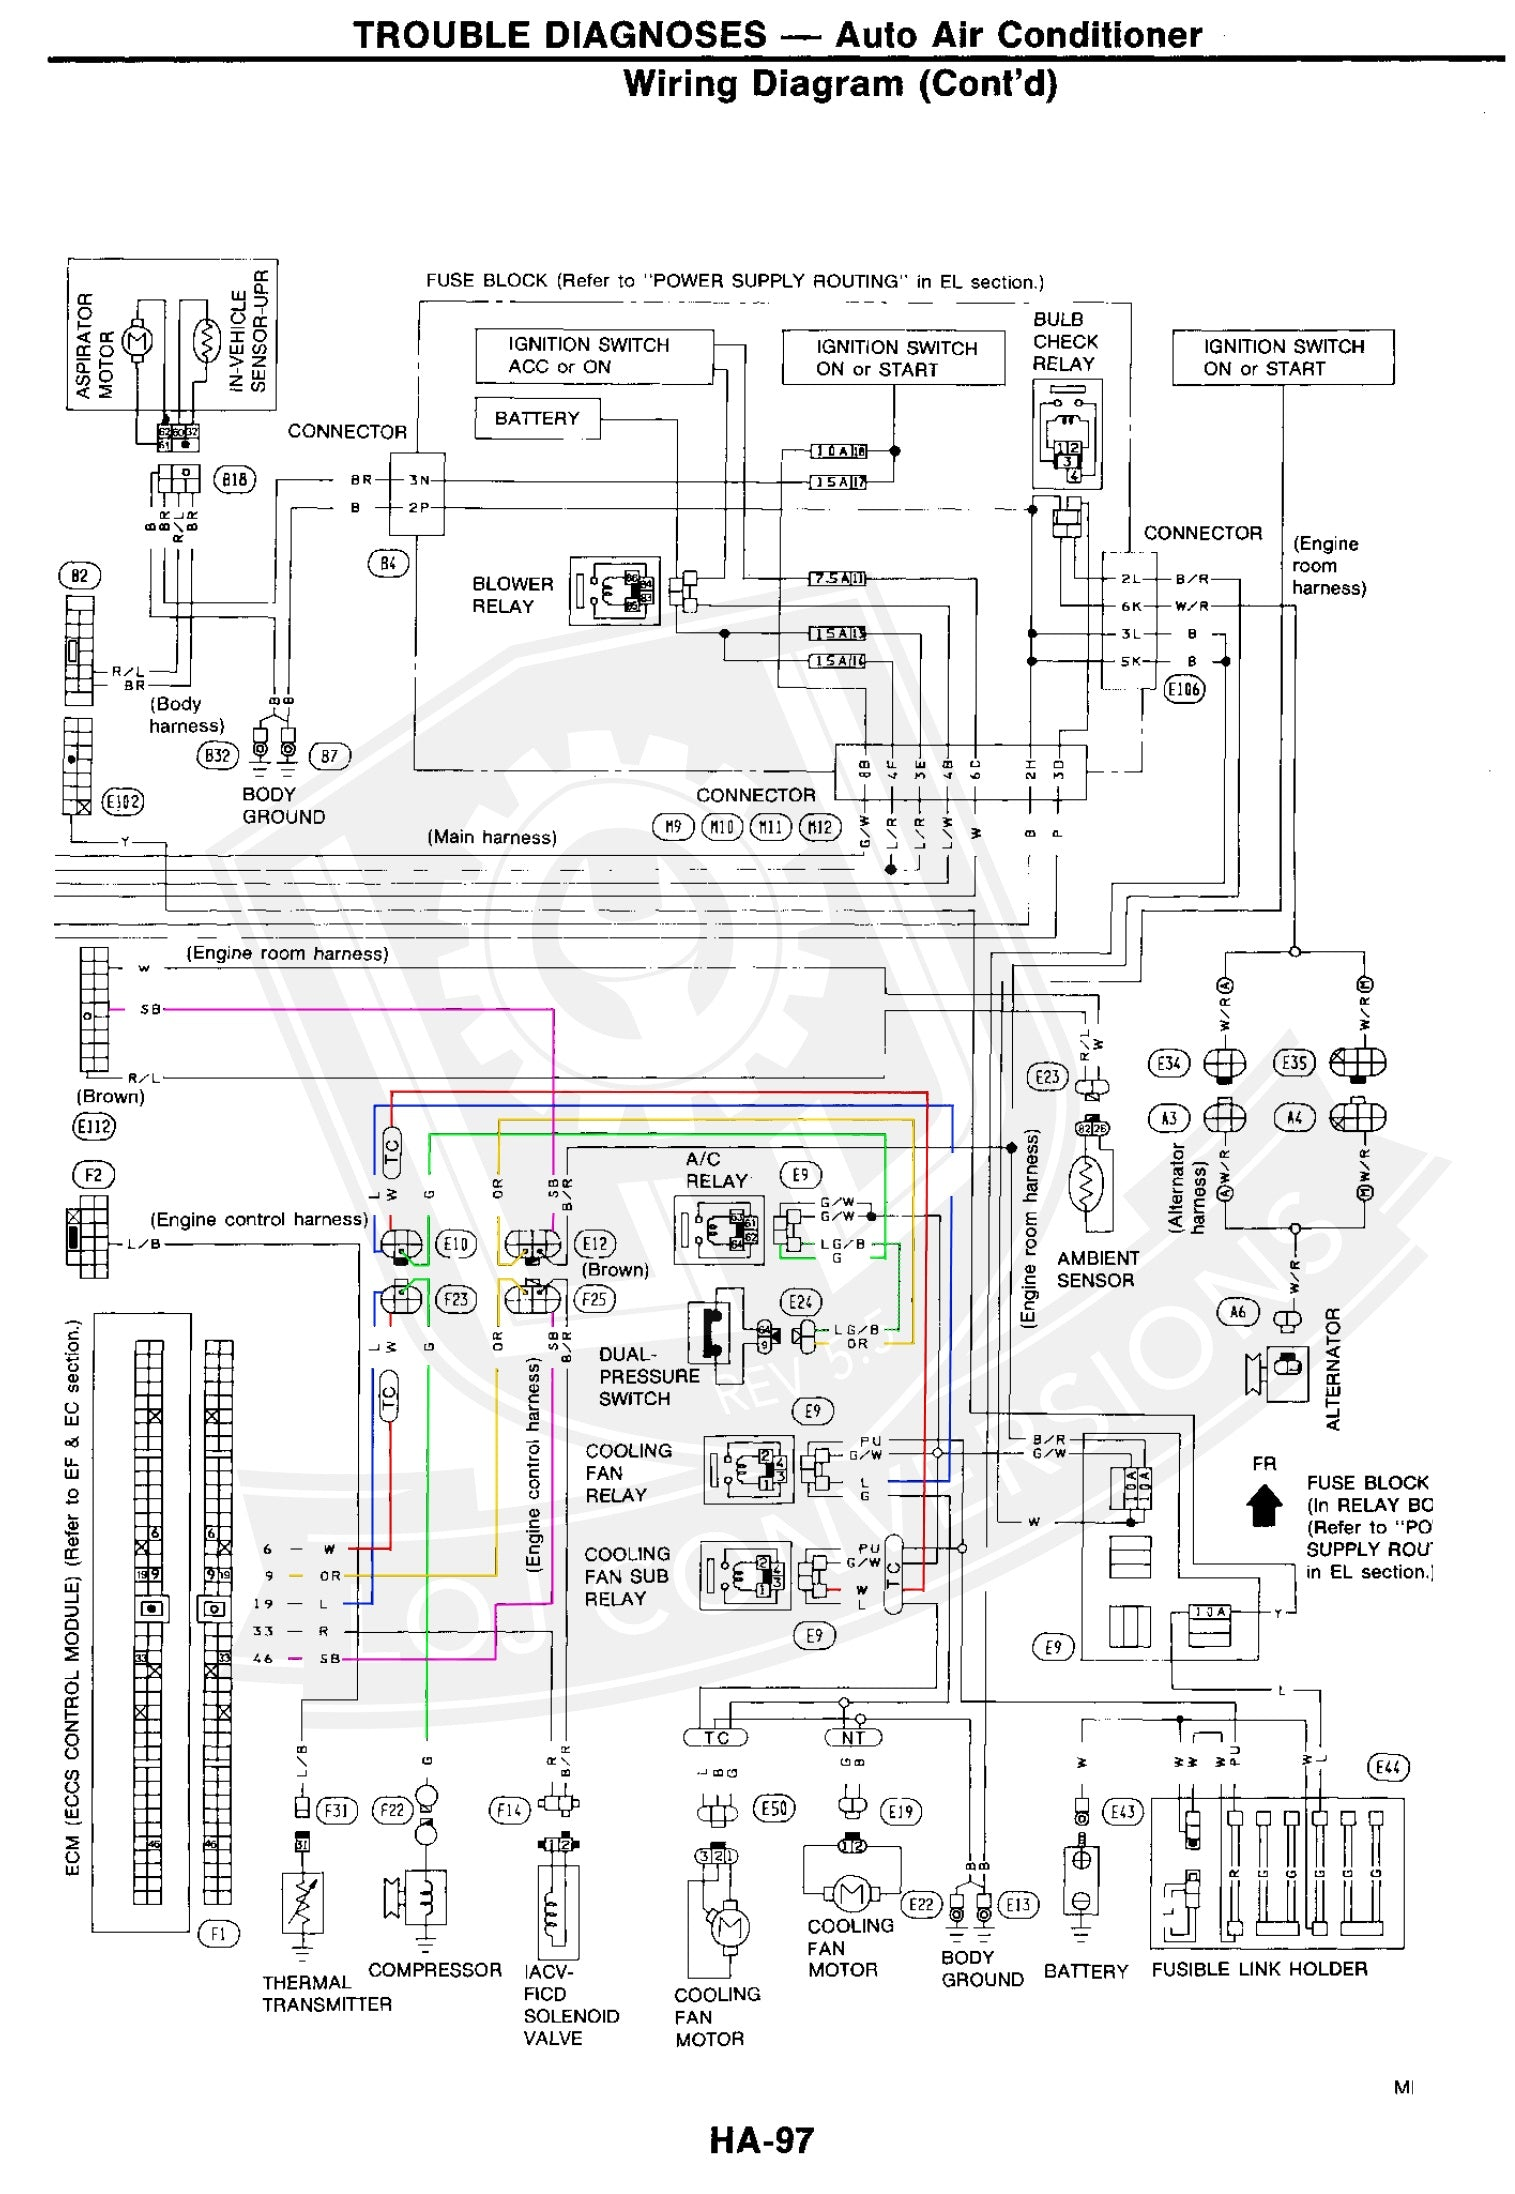 WRG-2262] 1985 Nissan Alternator Wiring on nissan brakes diagram, nissan alternator charging circuit, nissan forklift wiring diagram, nissan headlight wiring diagram, nissan battery diagram, nissan radio wiring diagram, nissan wiring harness diagram, 96 nissan pathfinder wiring diagram, nissan car stereo wiring diagram, nissan engine wiring diagram, nissan fuel injector wiring diagram, nissan relay wiring diagram, nissan murano alternator wiring, nissan 3.5 engine diagram, nissan maxima wiring diagram, 1997 nissan pathfinder wiring diagram, nissan trailer wiring diagram, nissan alternator parts, nissan frontier alternator diagram, 2013 nissan frontier wiring diagram,